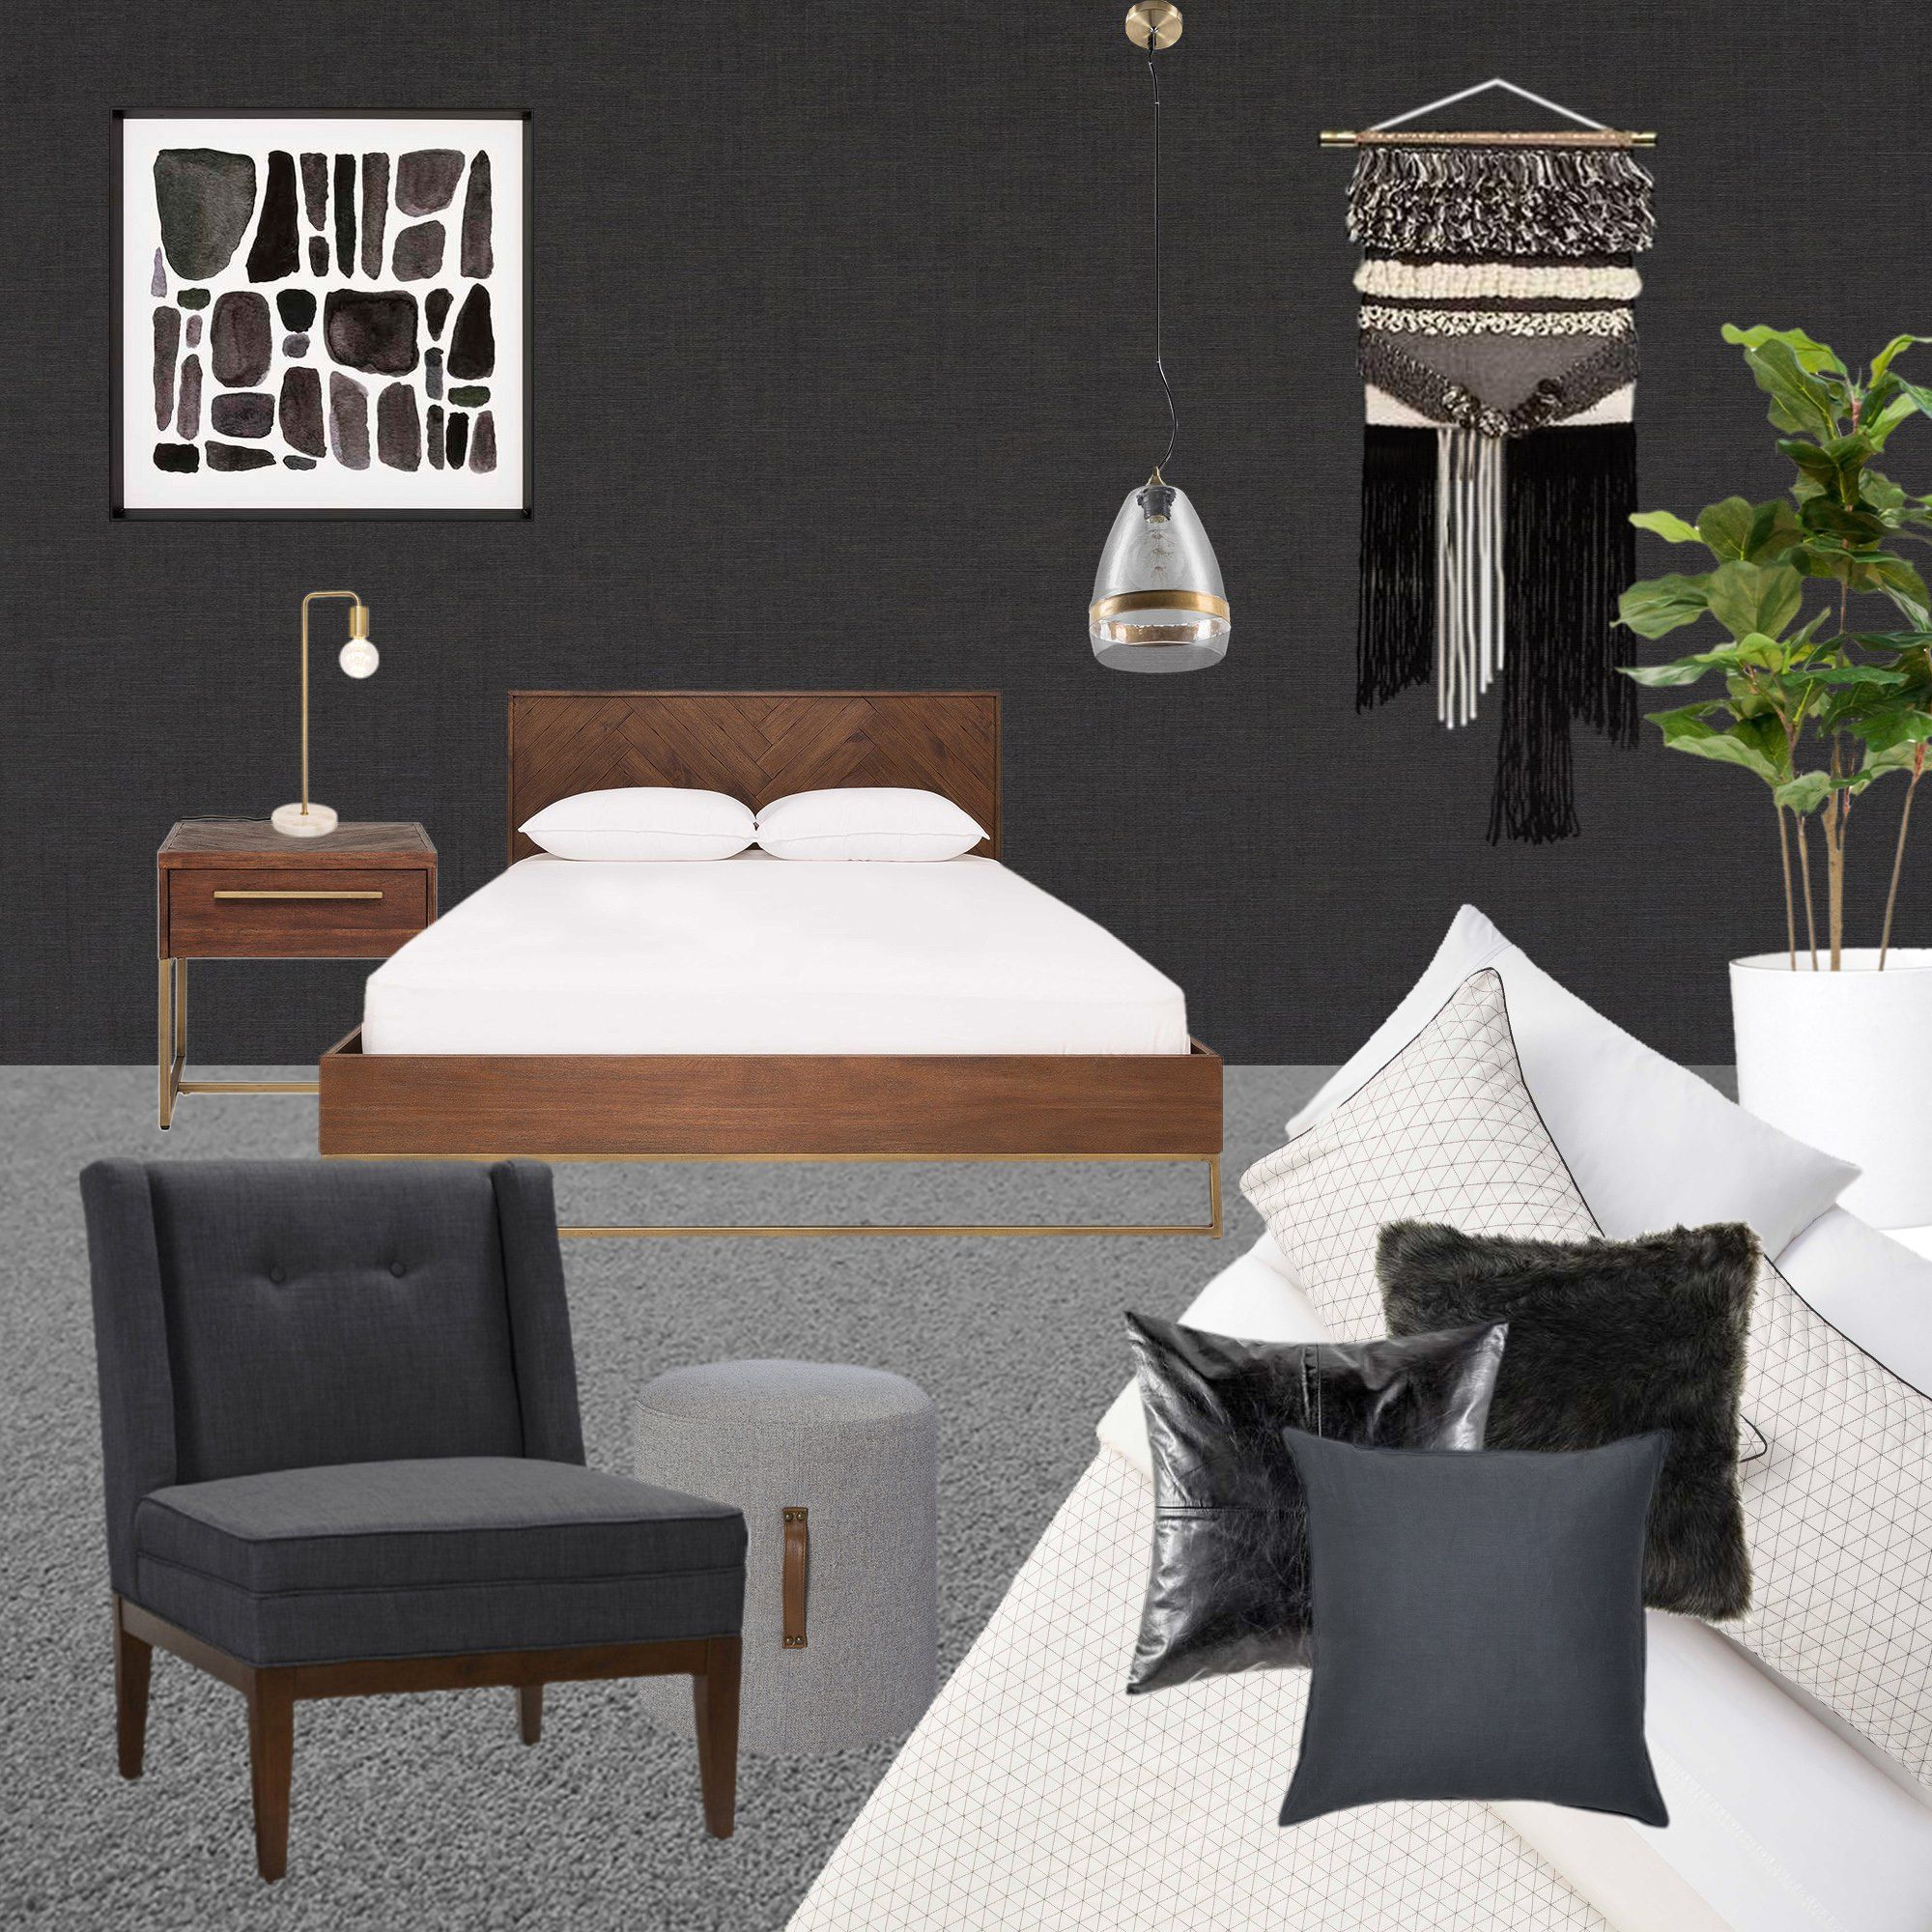 Get The Look From Emma And Courtneys House 5 Master Bedroom We